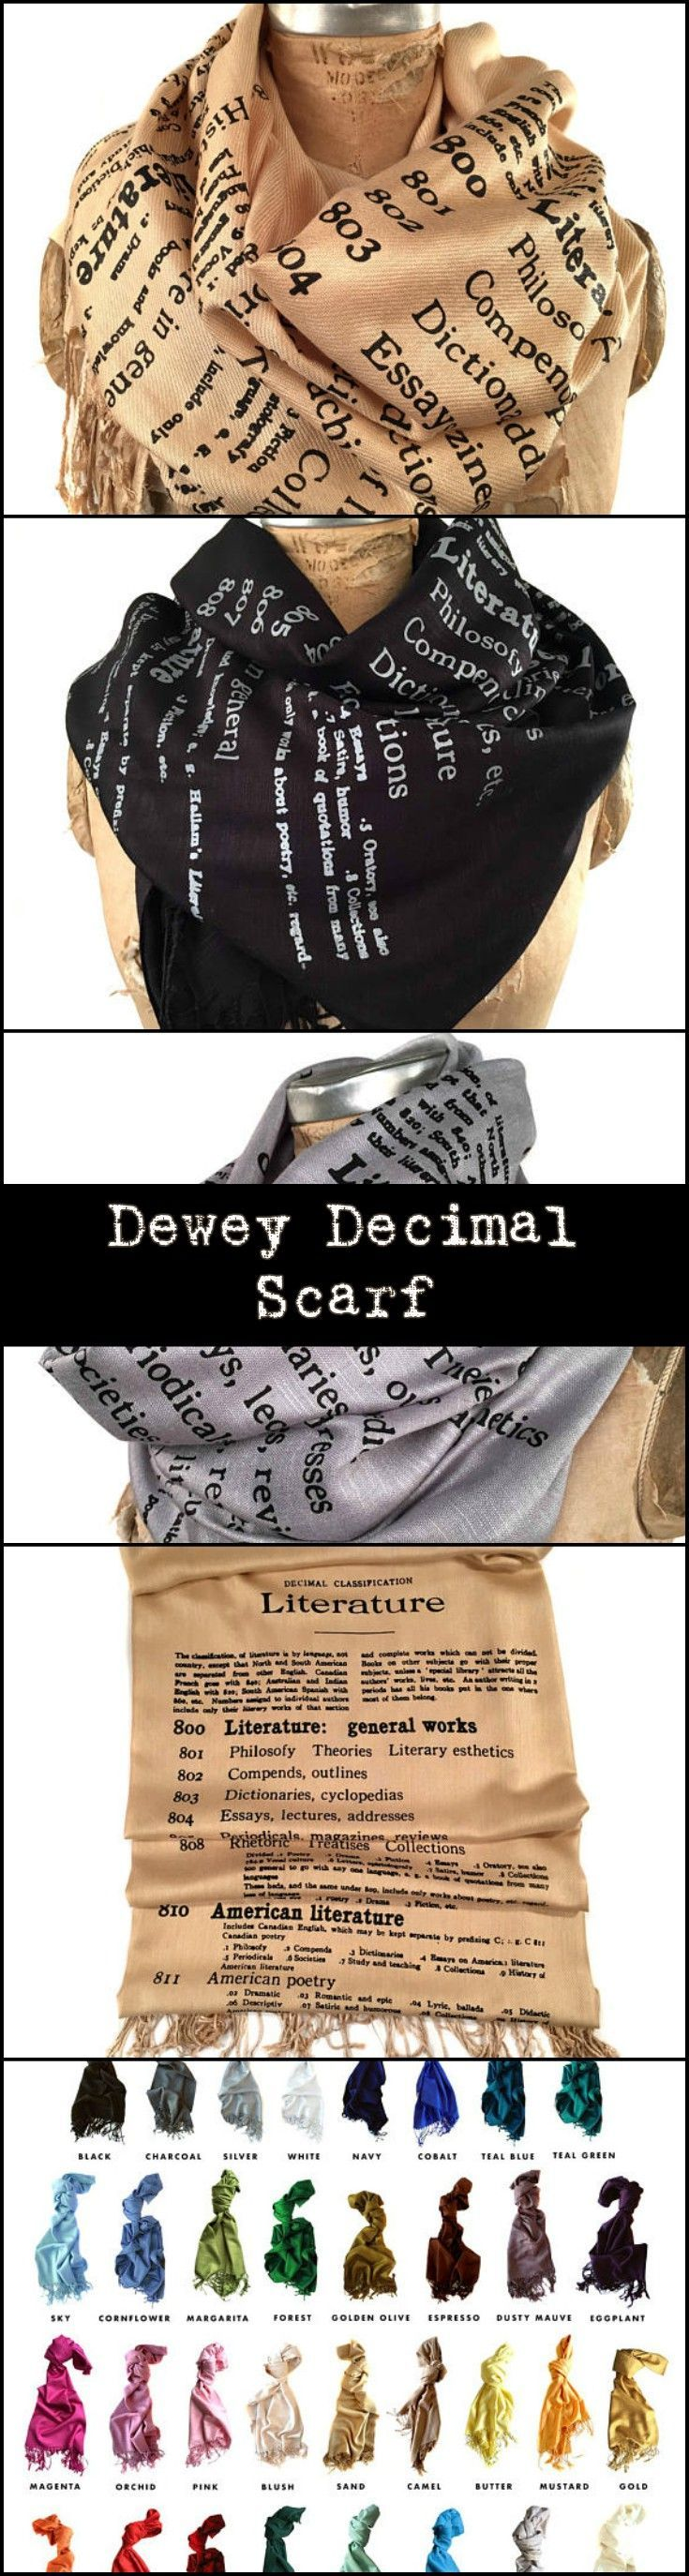 Super cute Dewey Decimal scarf available in several colors. I'm in love with the gold. #ad #scarves #bookporn #booklovers #books #fashion